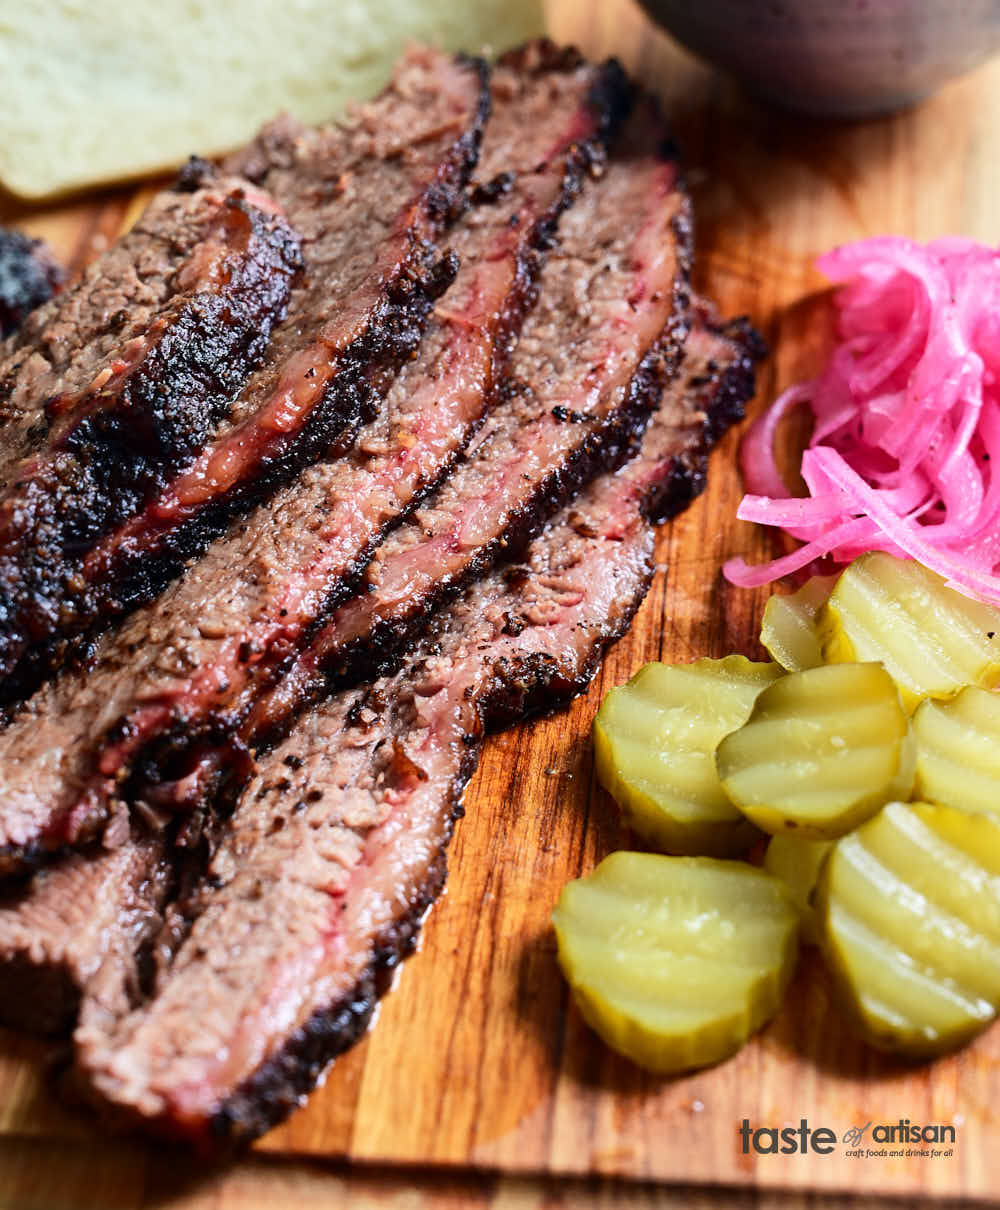 Juicy, tender, moist slices of smoked brisket with condiments